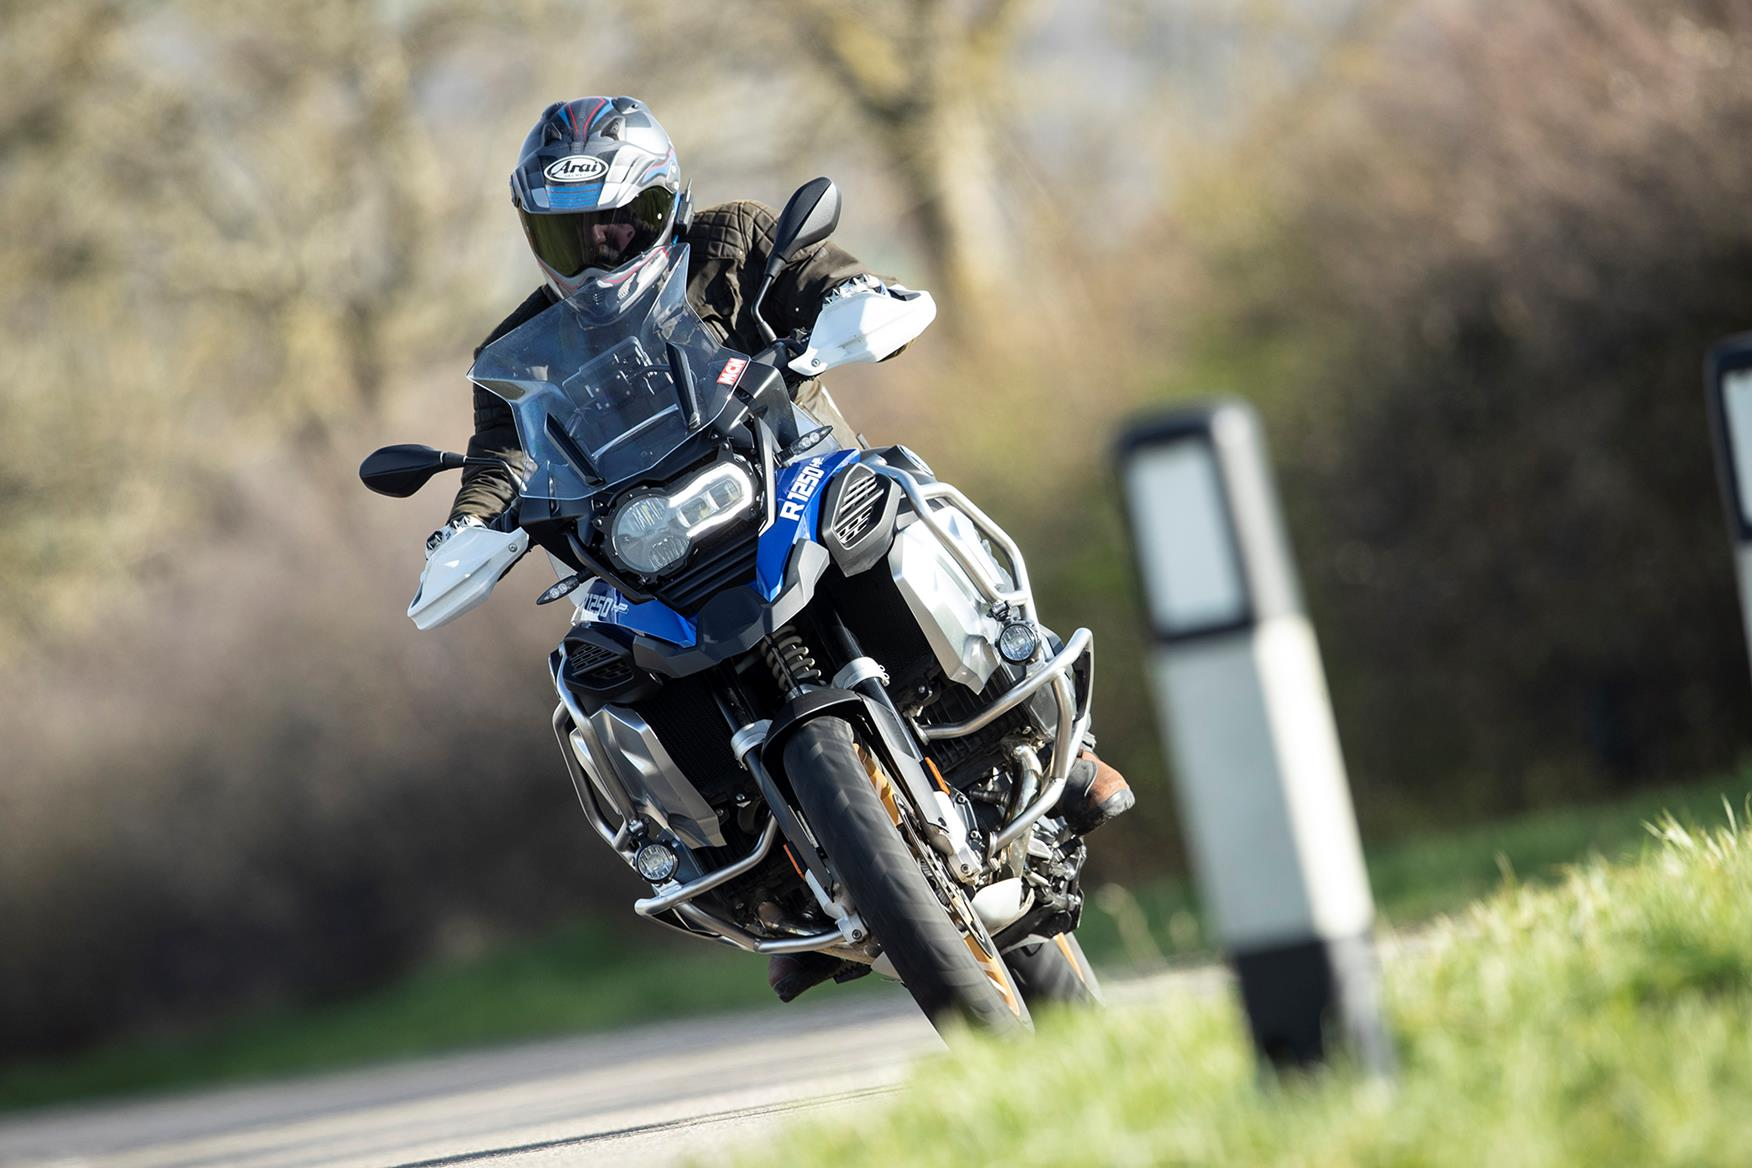 Riding the BMW R1250GS Adventure